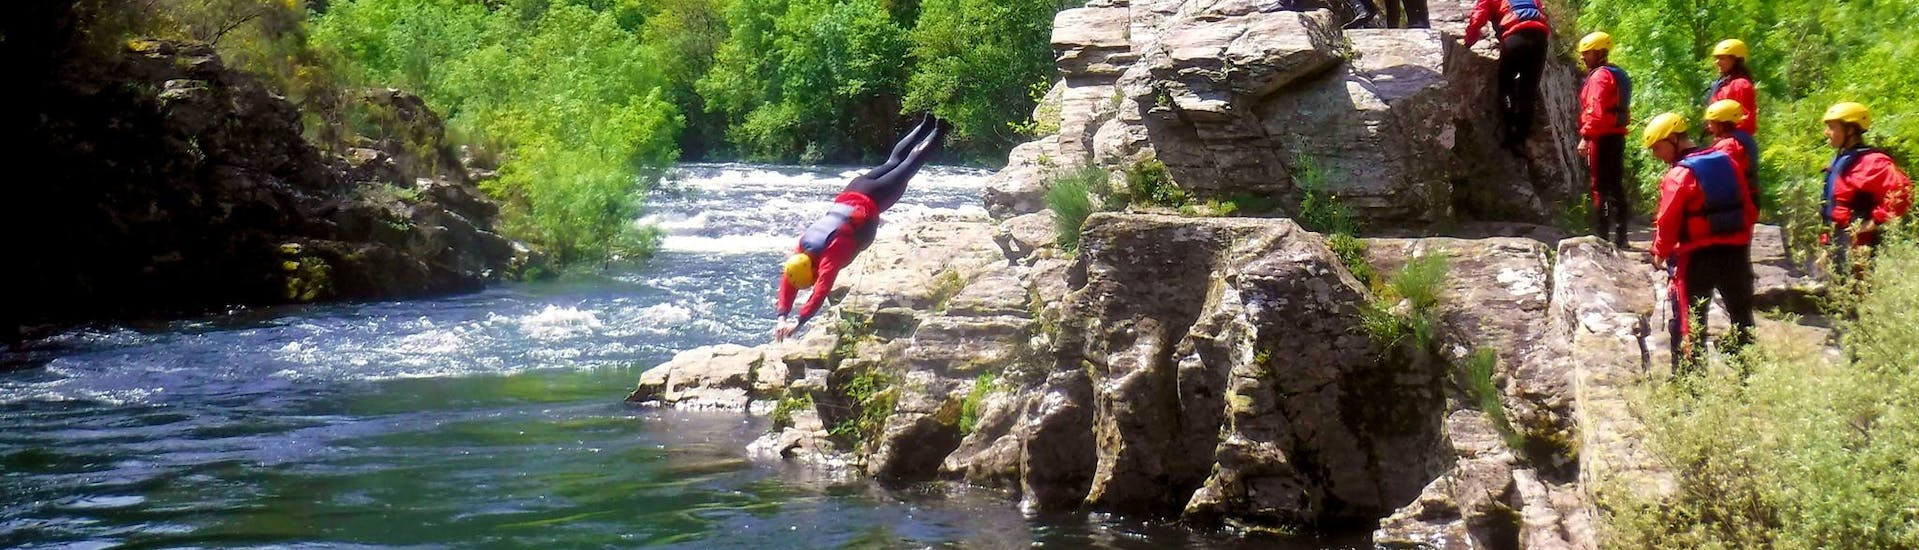 A participant of the Easy River Trekking in Rio Paiva in Arouca Geopark with Clube do Paiva is cliffjumping into the cool water of the river.